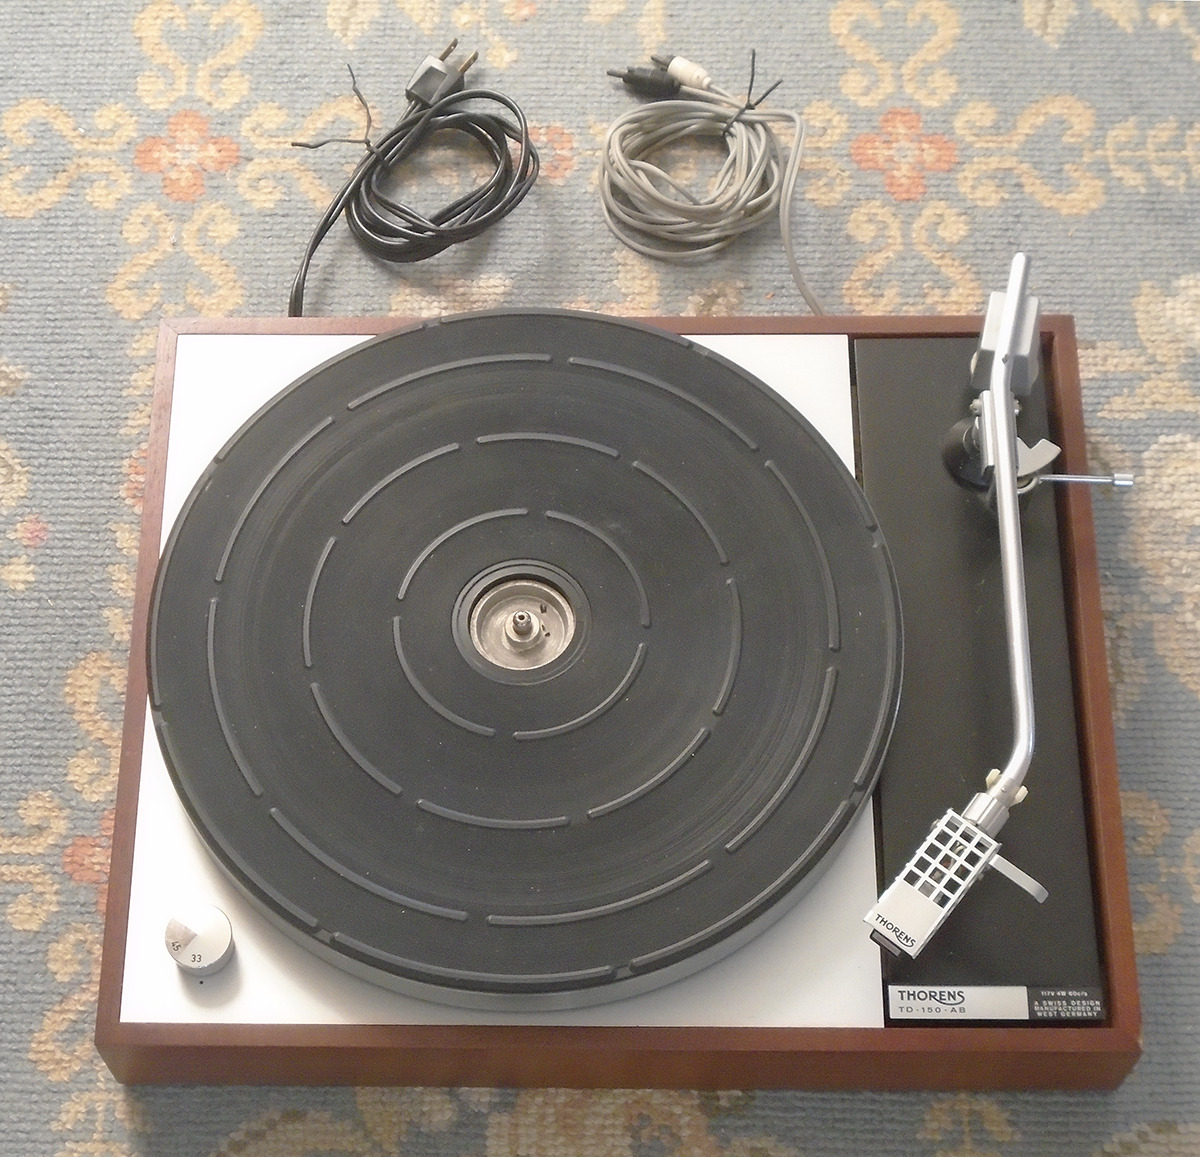 Thorens TD - 150 - AB Turntable, Tonearm, Cartridge, Stylus. Buy it now for 595.00